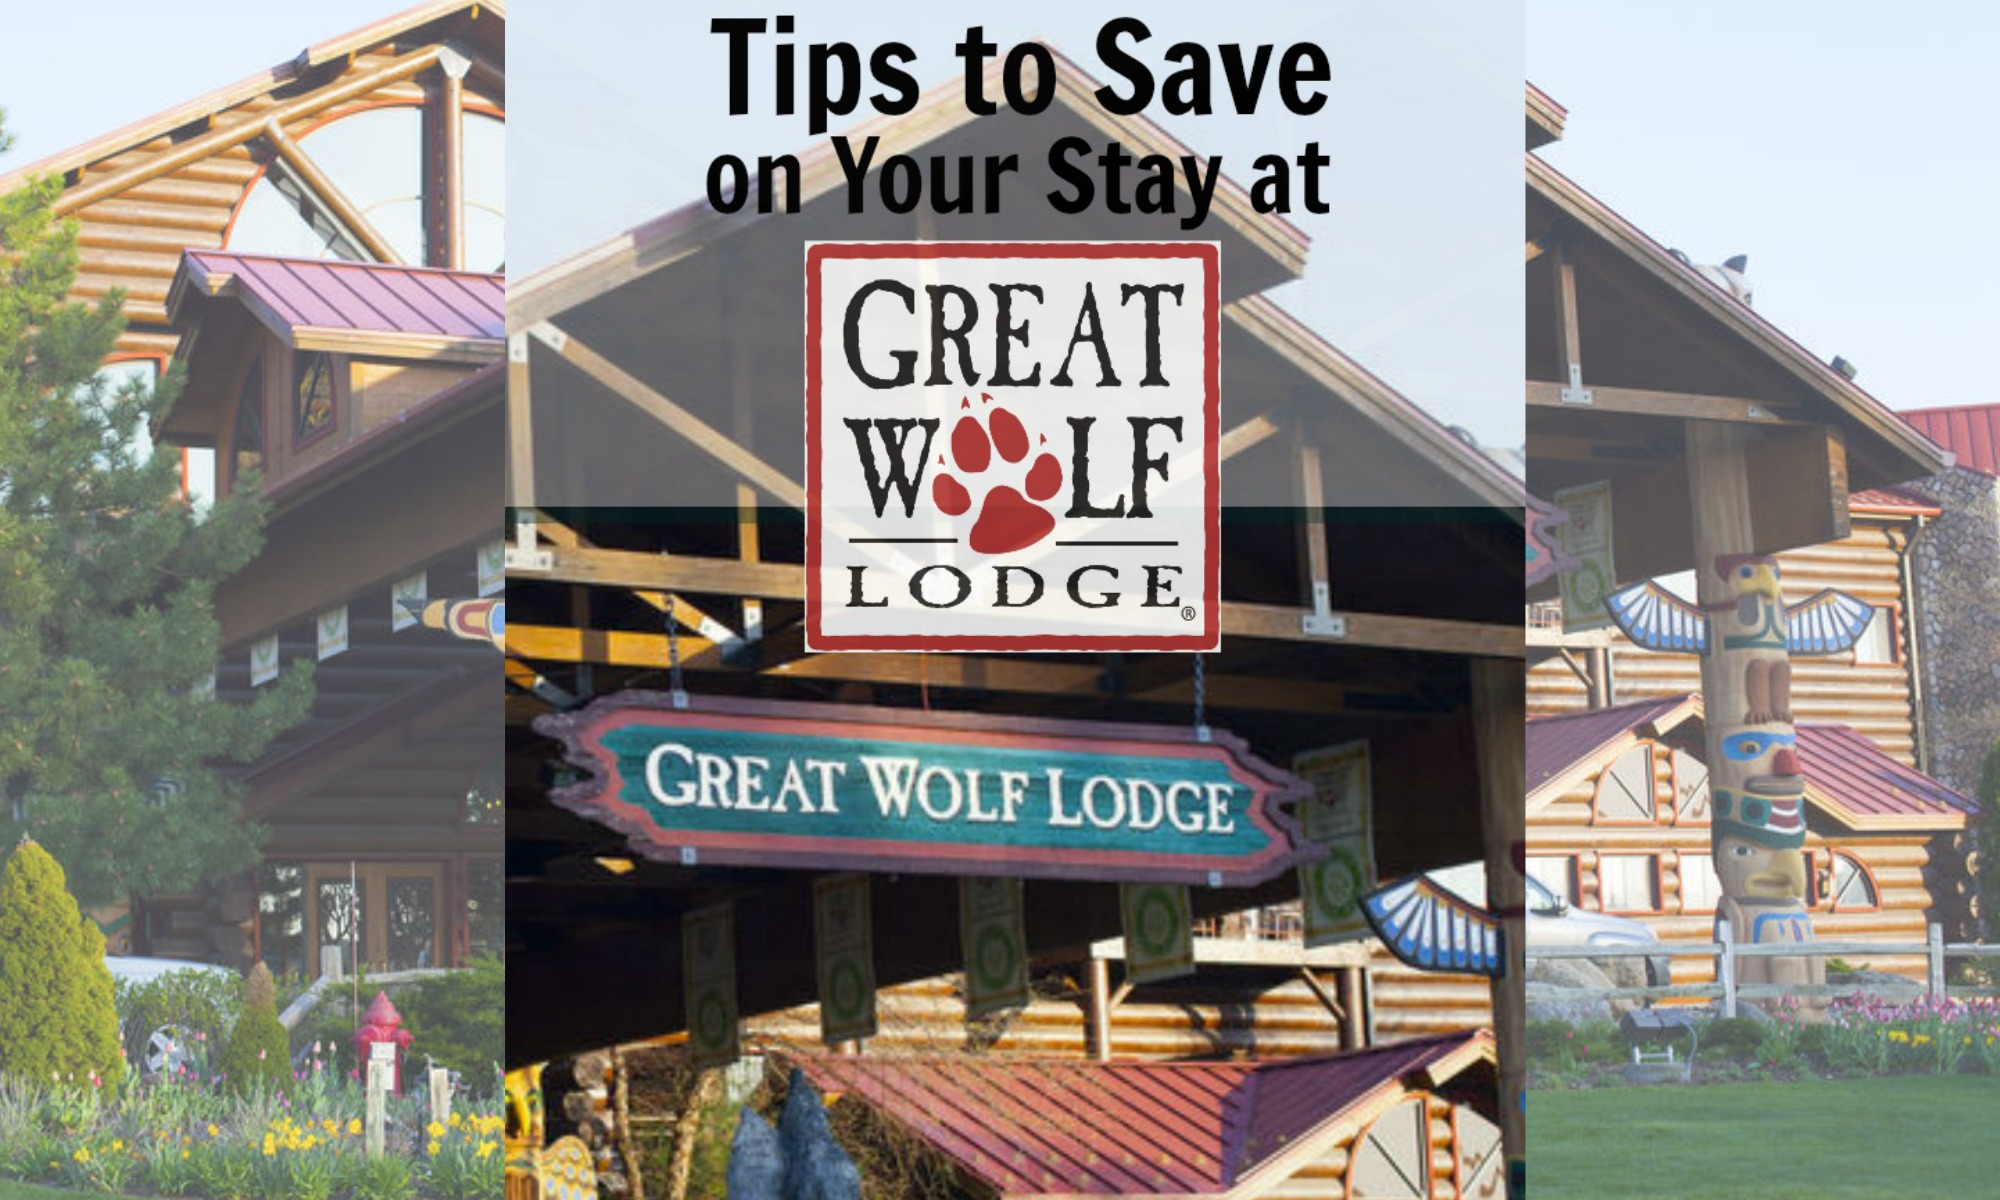 Great wolf lodge coupons discounts